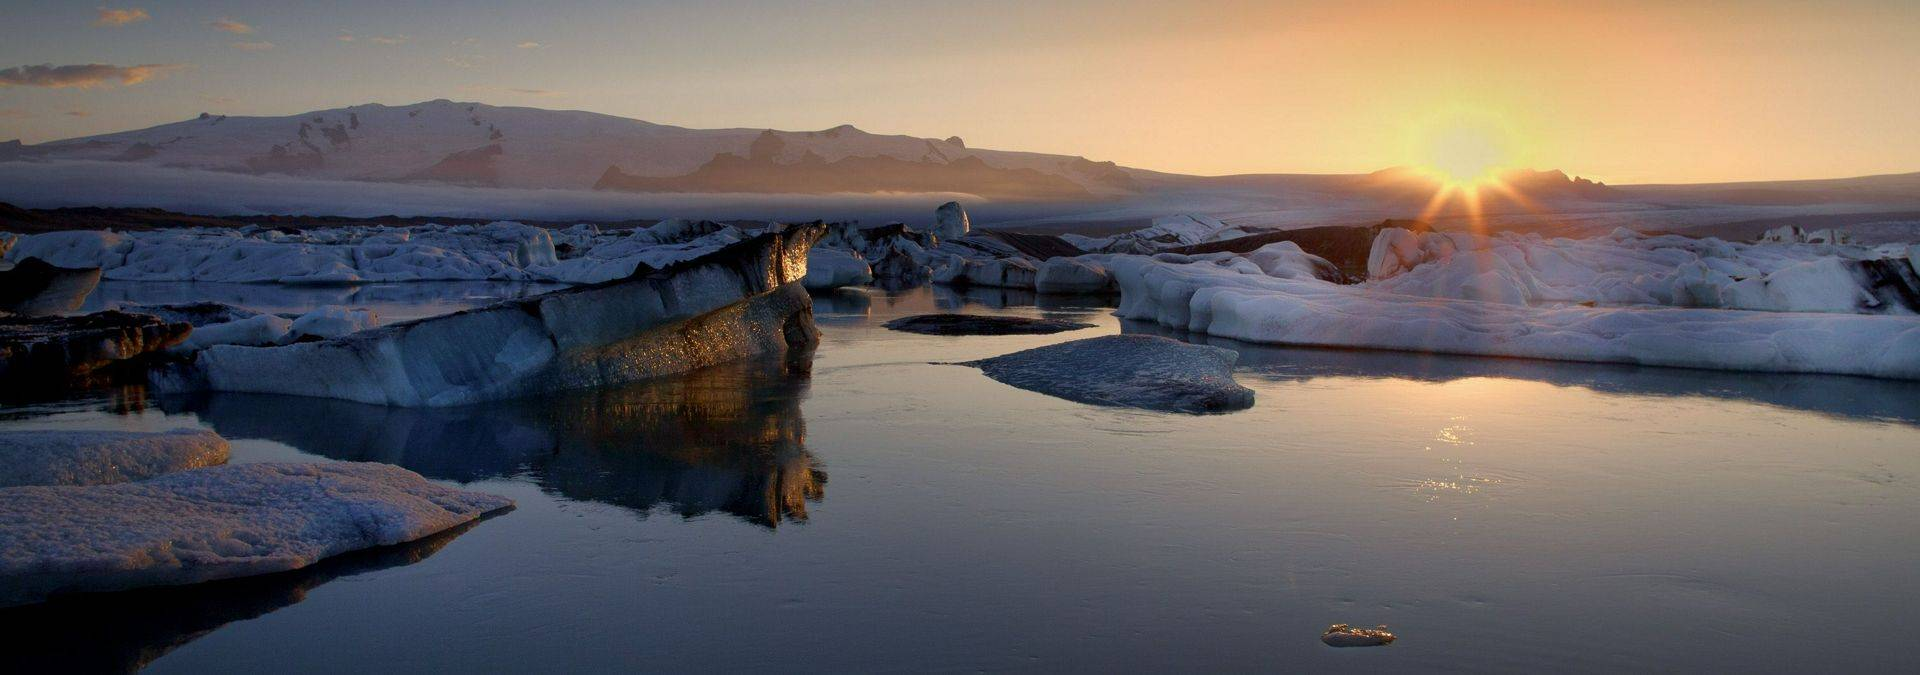 Sunset, South Shore, Iceland, Credit - Iceland Pro Travel